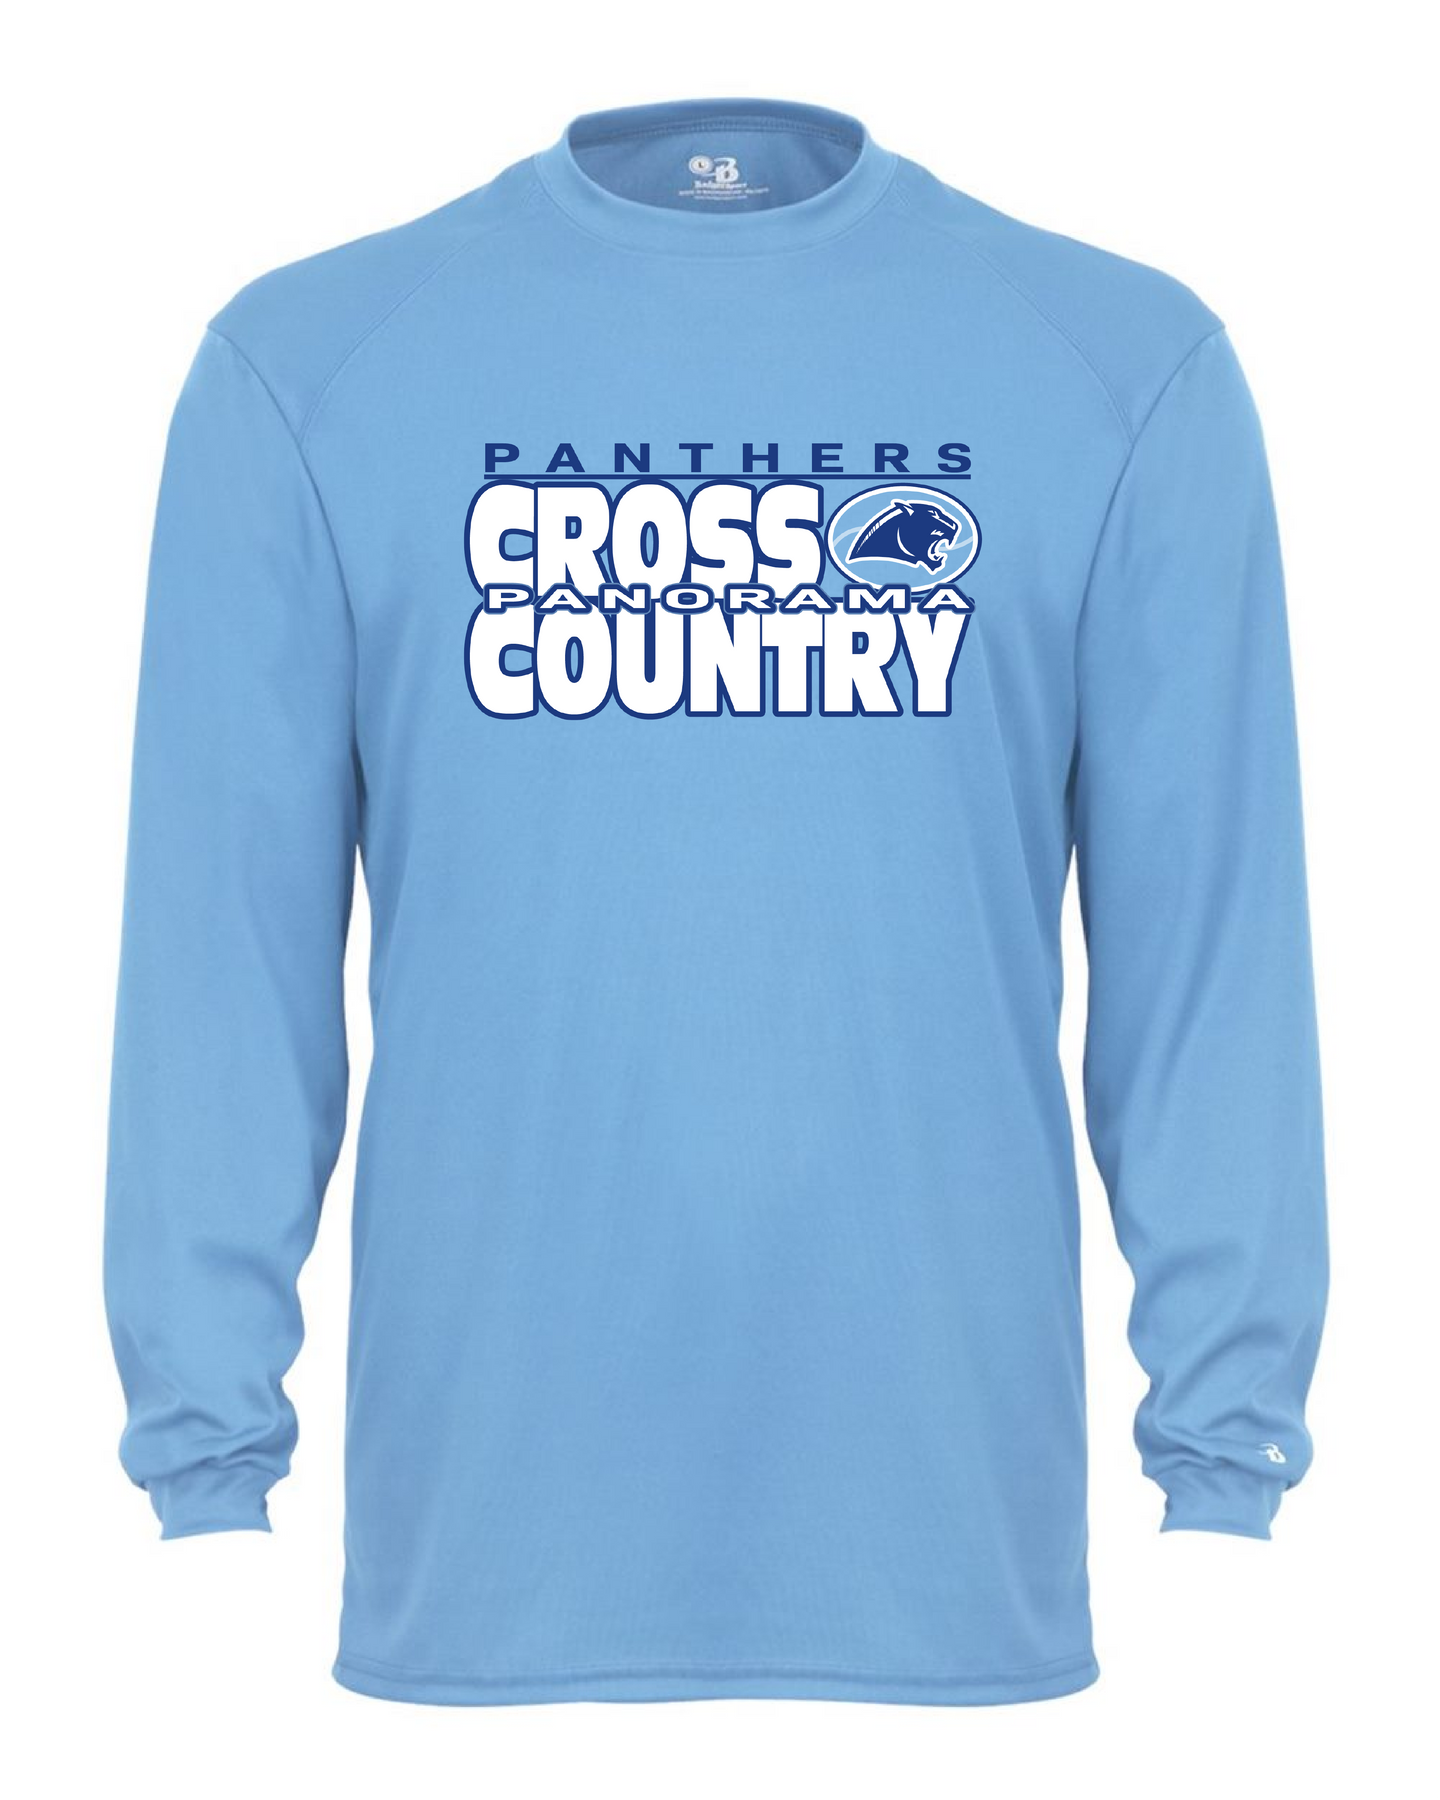 Panorama Cross Country--Badger - B-Core Long Sleeve T-Shirt - 4104 Columbia blue